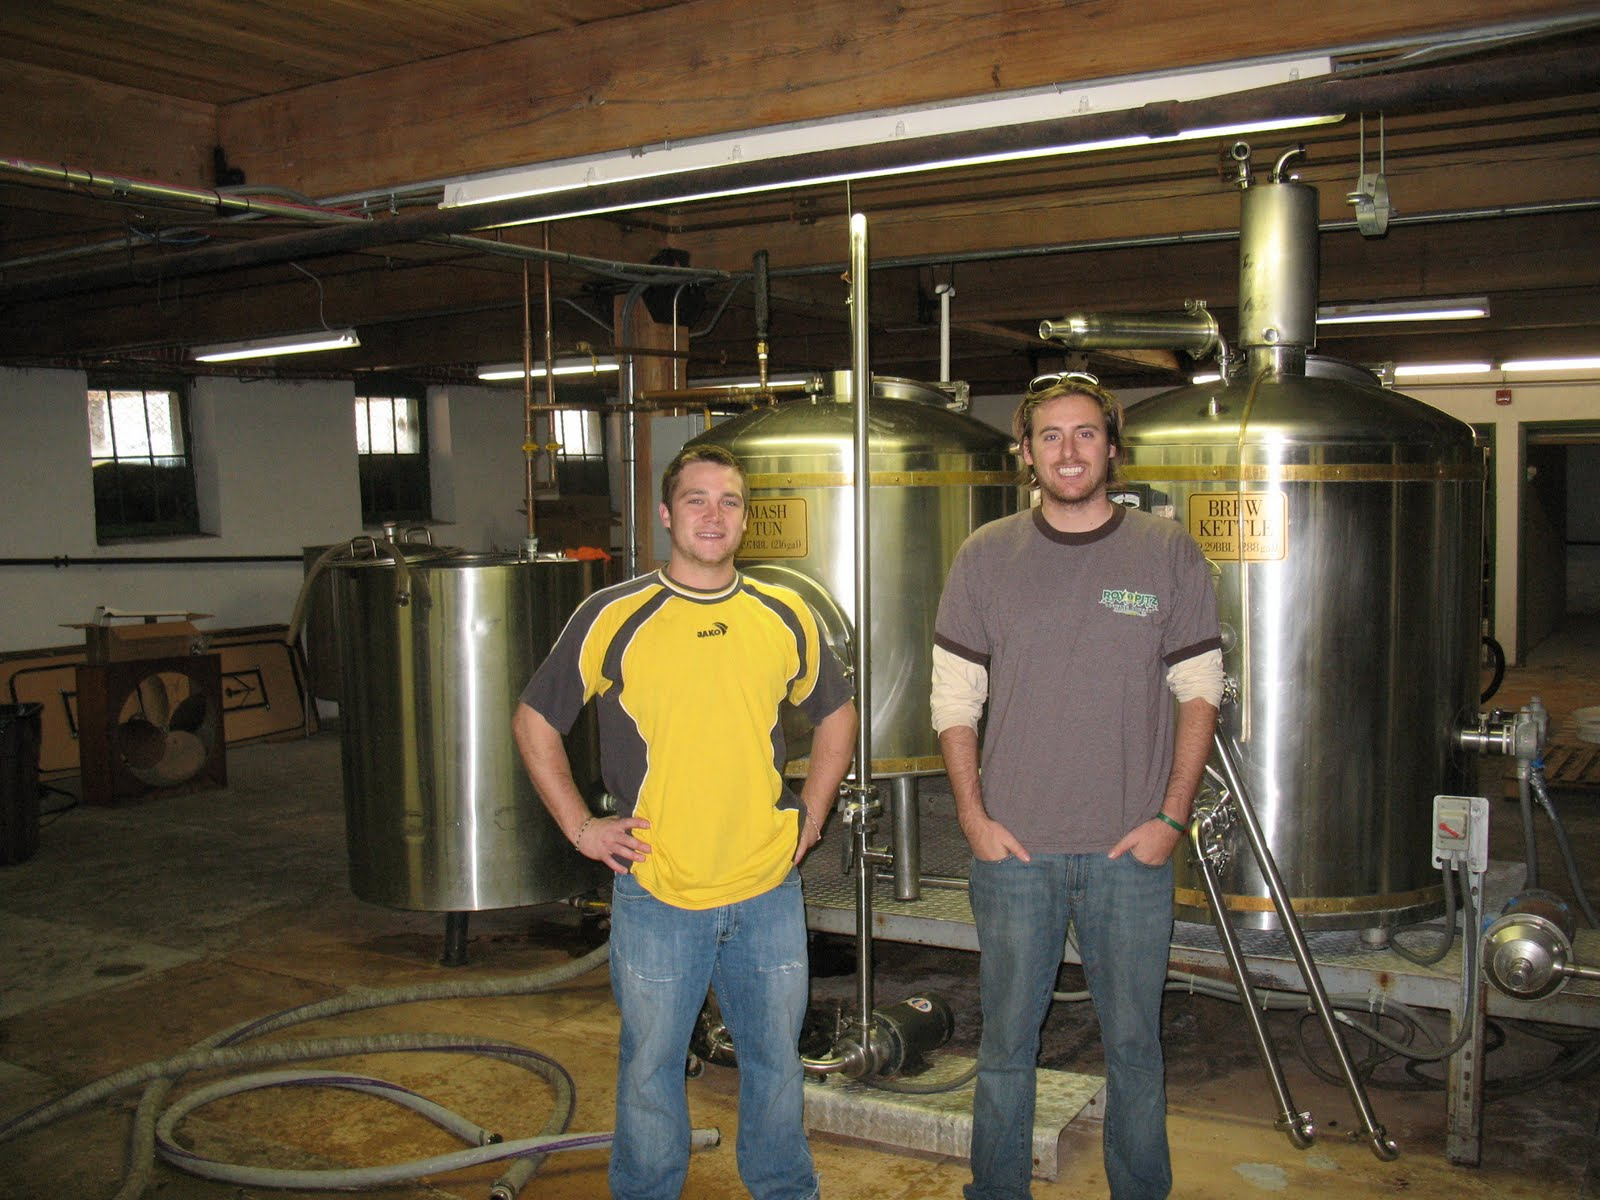 Ager Tank - Brewery Industry Equipment